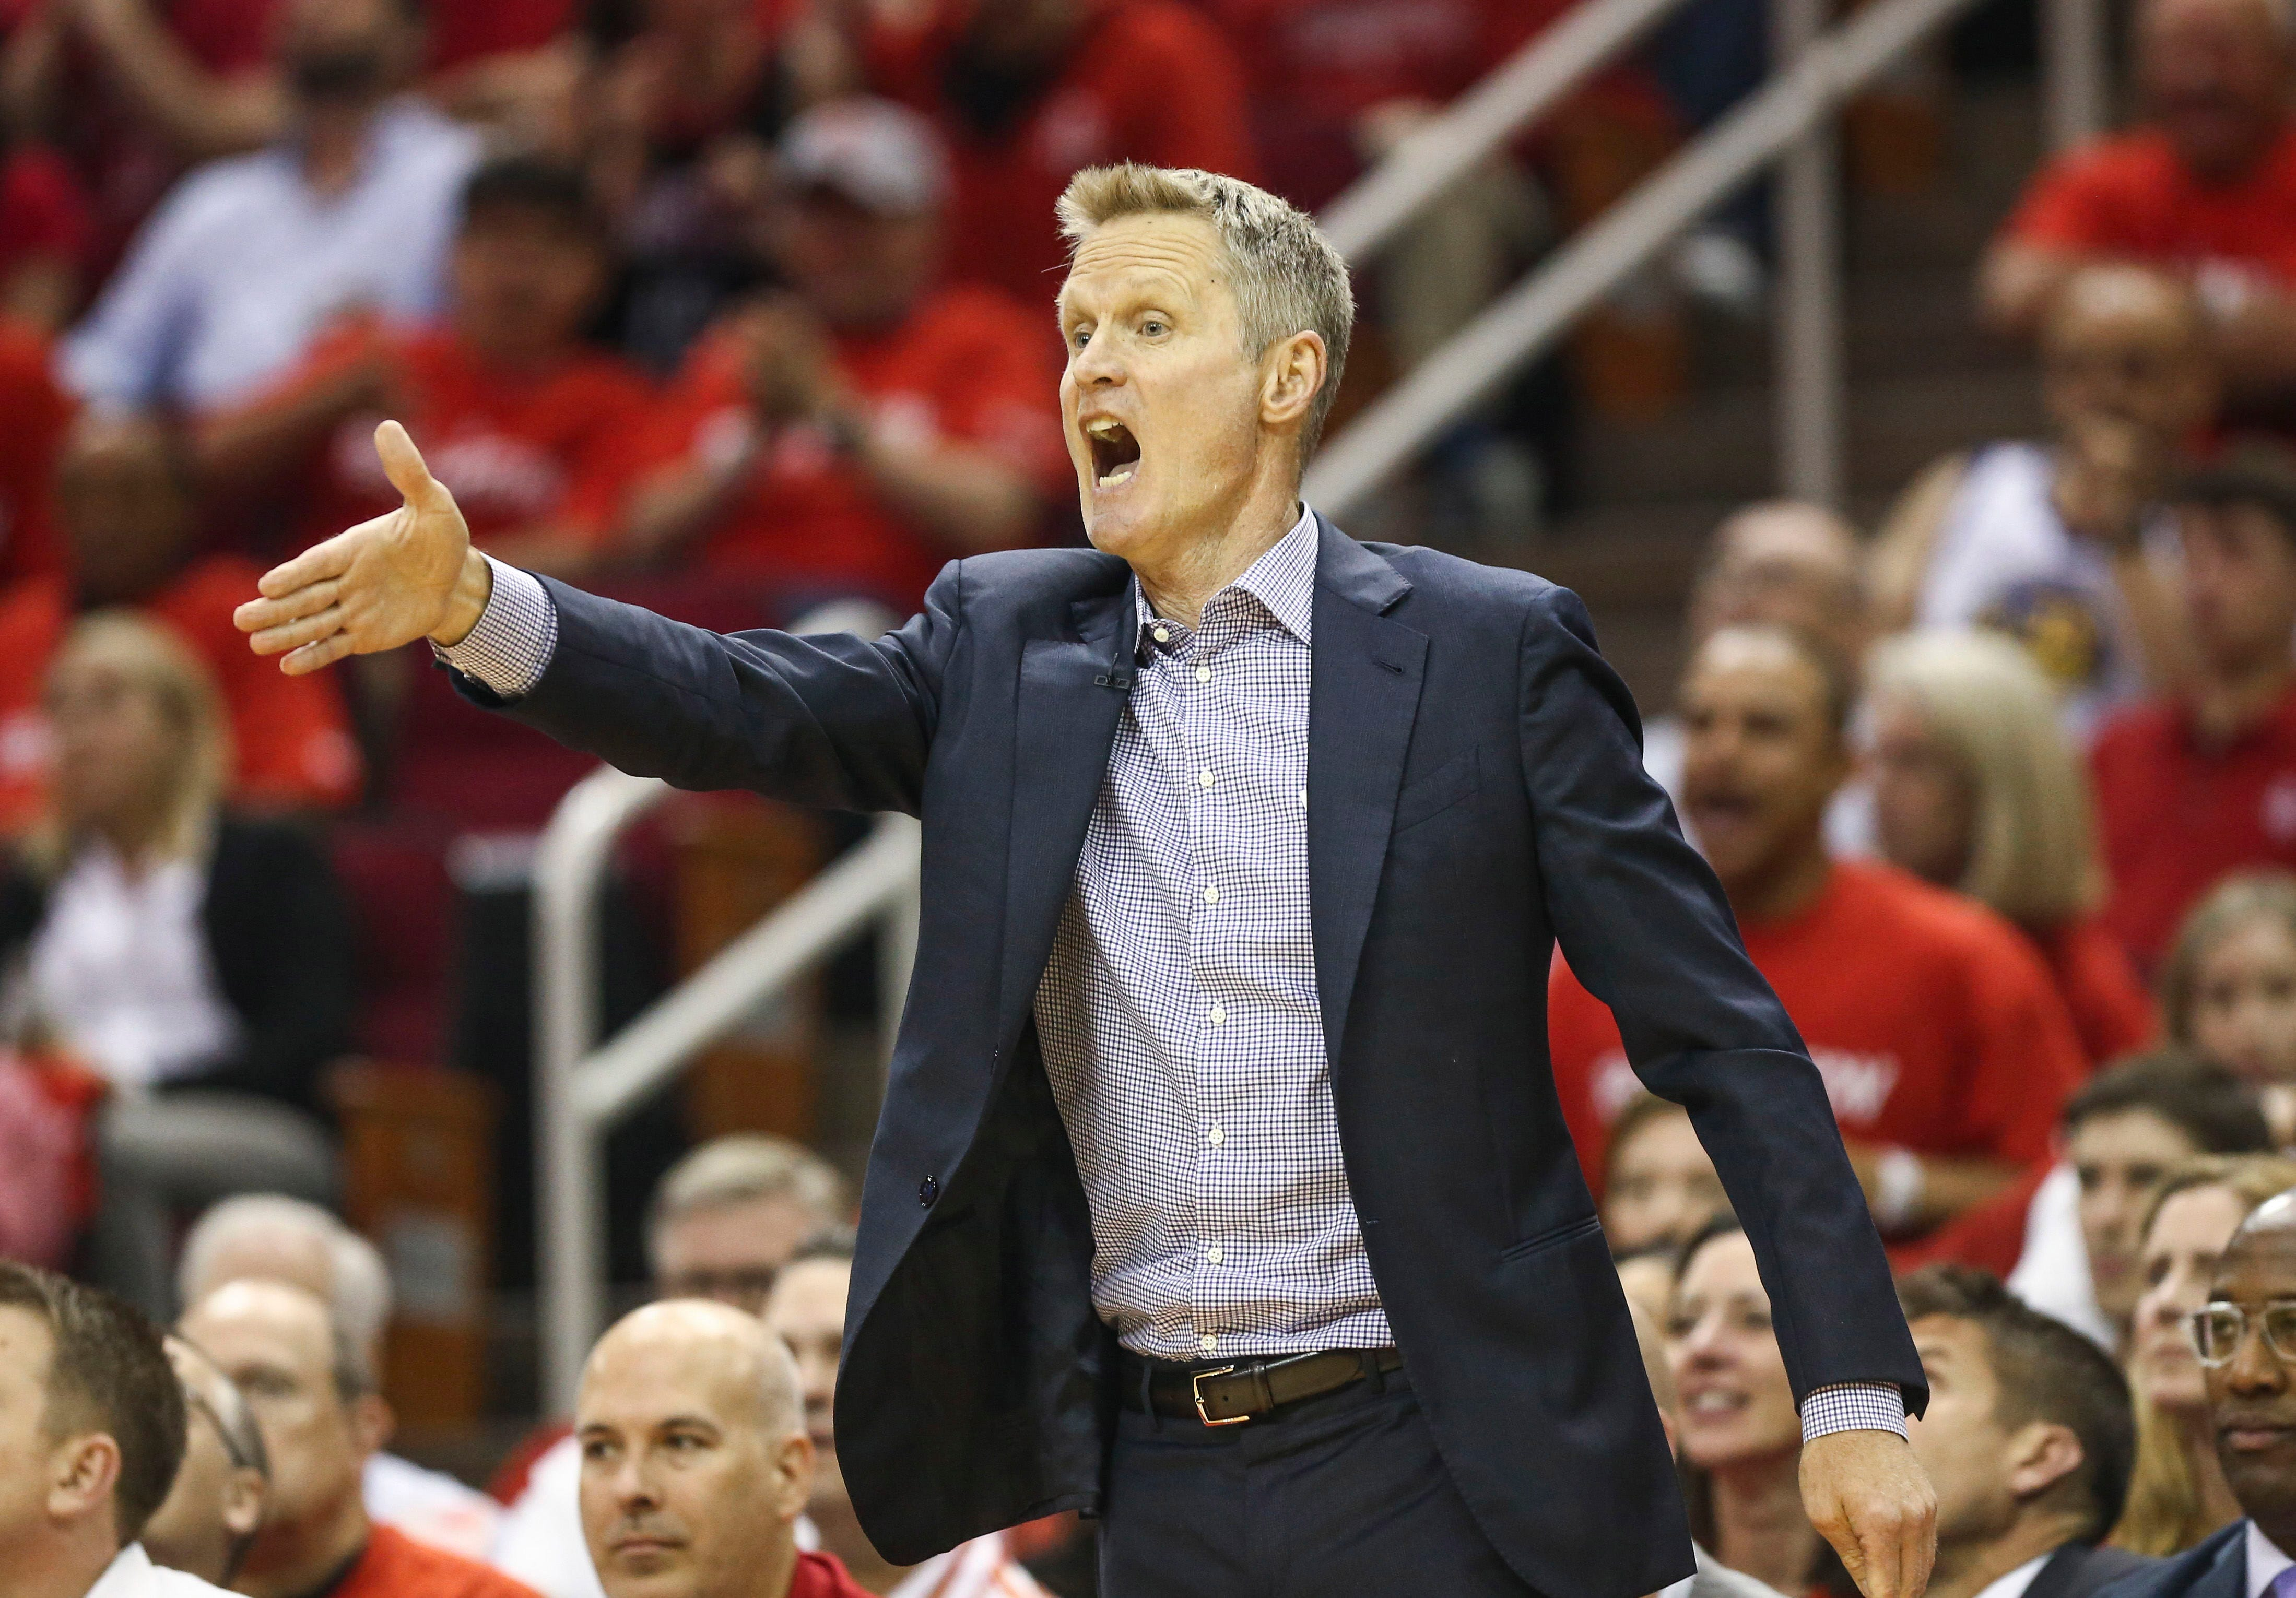 Warriors coach Steve Kerr after inspired win: 'Our guys are (expletive) giants'